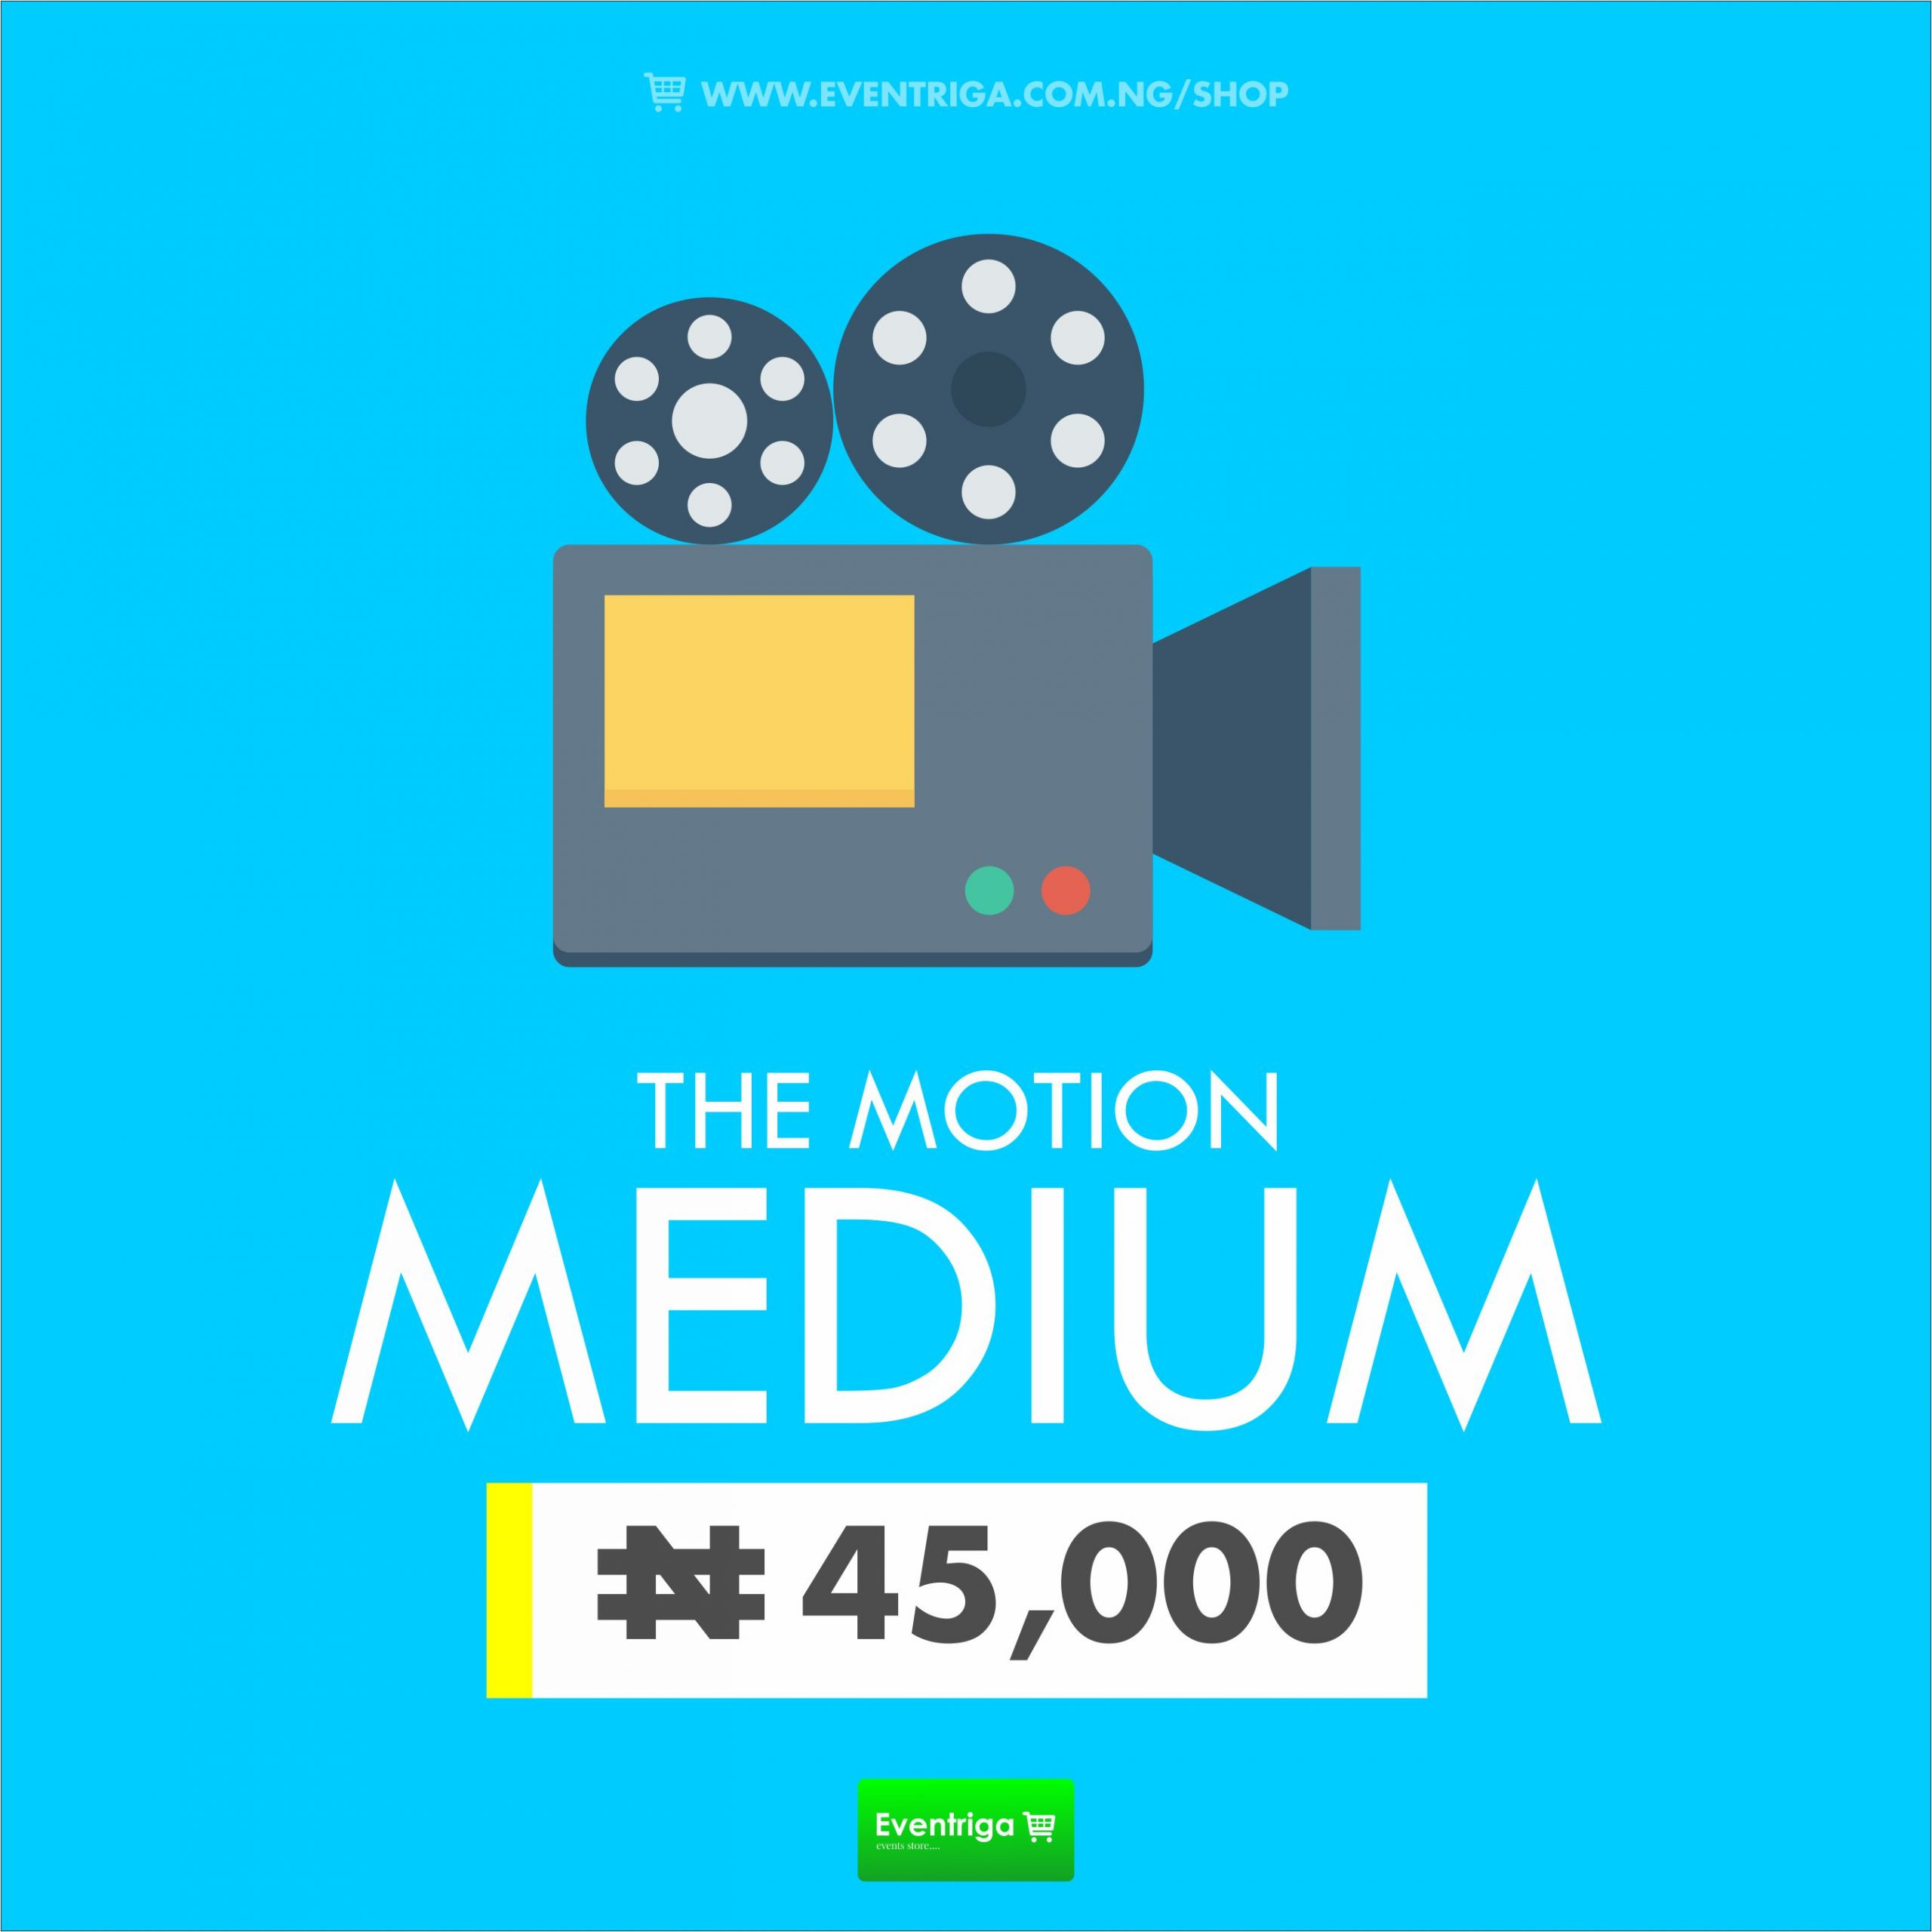 The Motion Medium